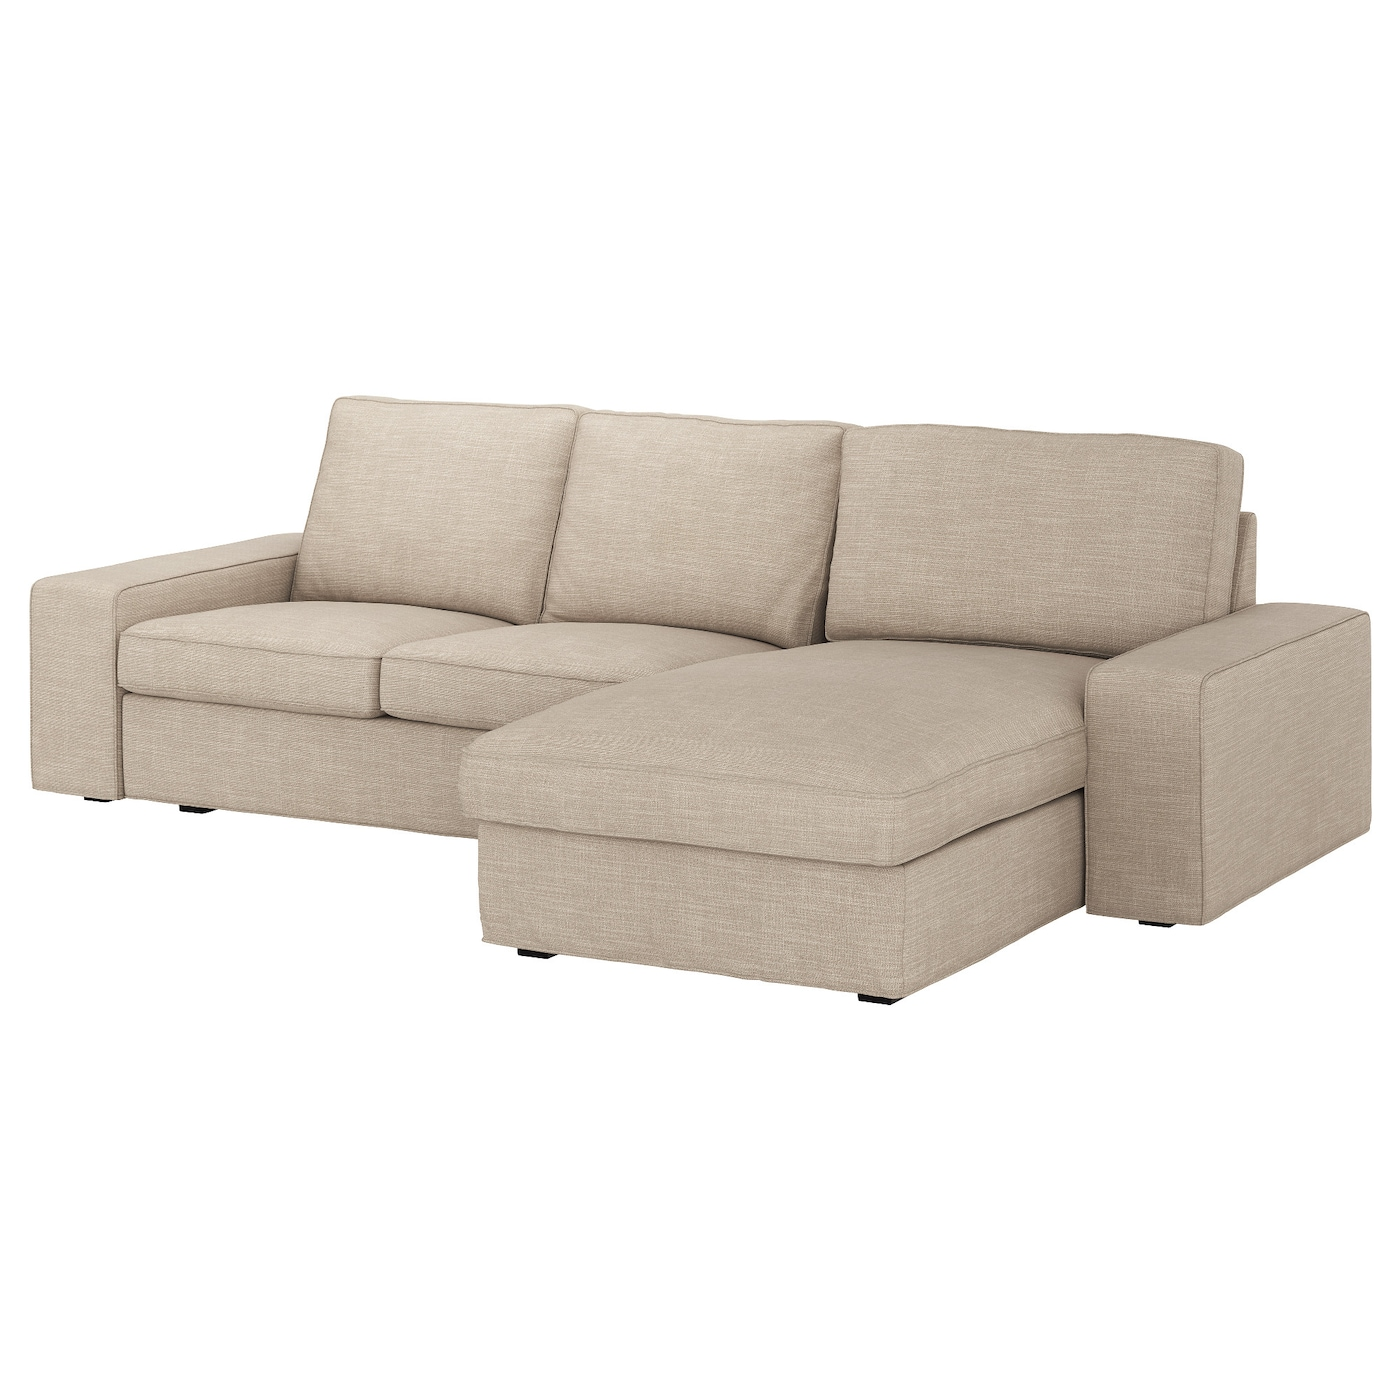 Kivik 3 seat sofa with chaise longue hillared beige ikea for Chaise longue jardin ikea